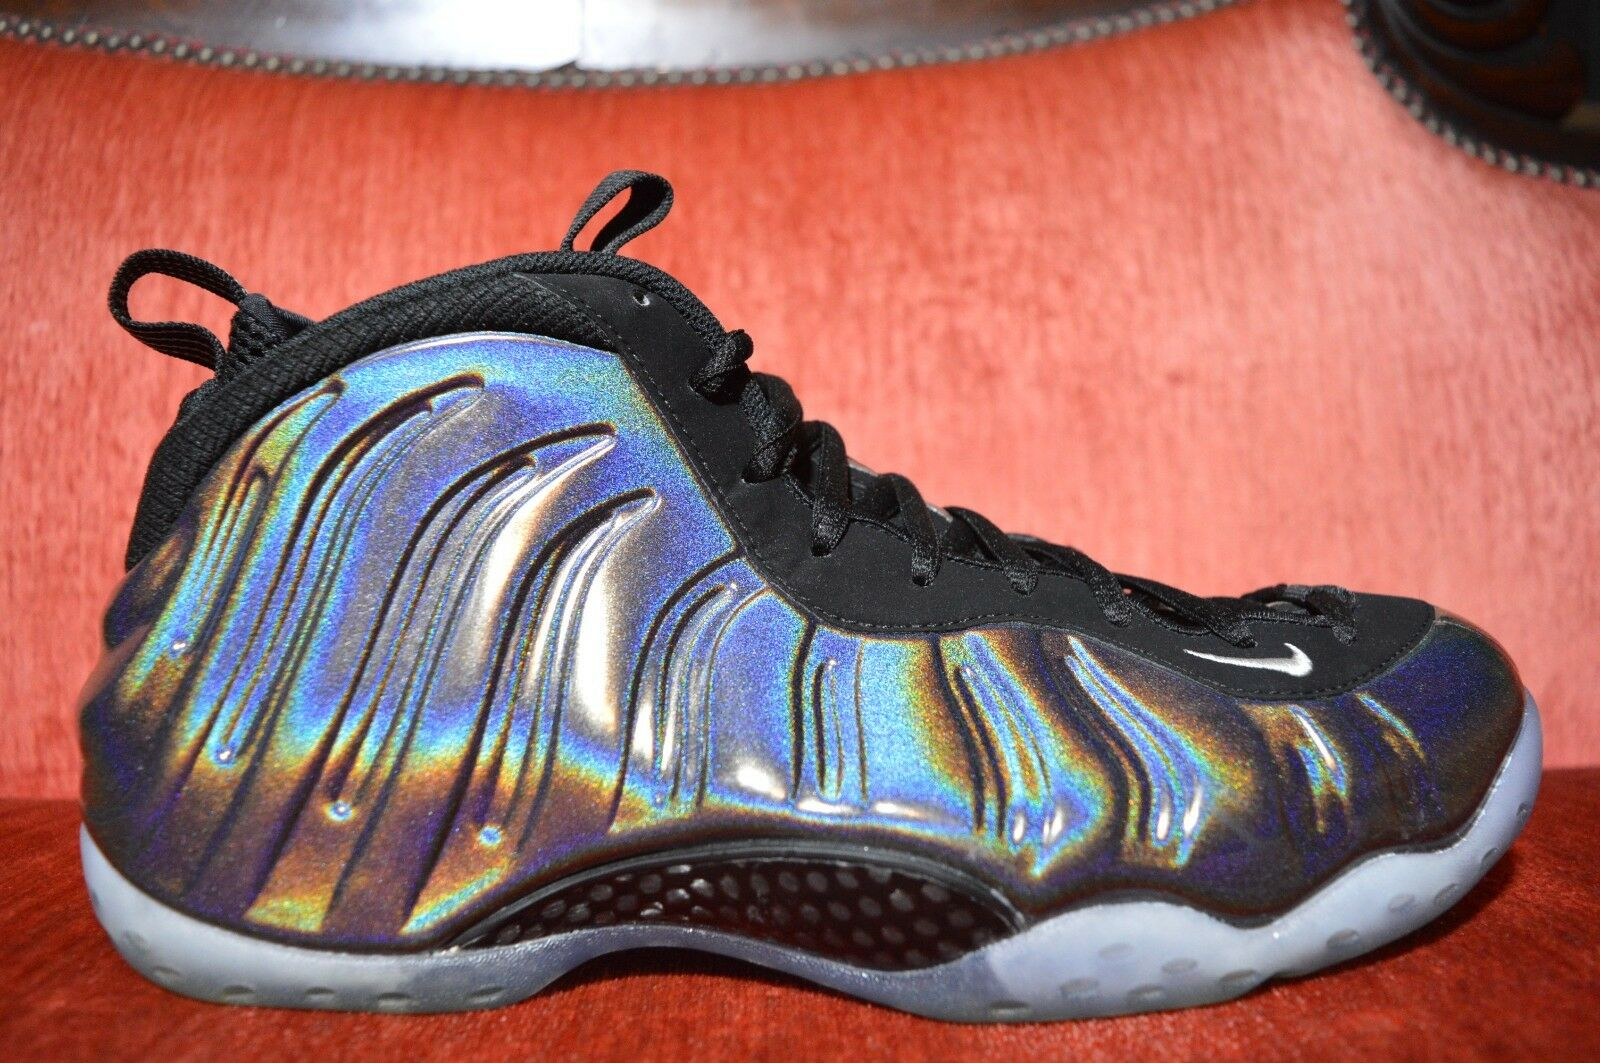 CLEAN NIKE AIR FOAMPOSITE ONE MULTI COLOR-SILVER HOLOGRAM 314996-900 Comfortable Seasonal clearance sale